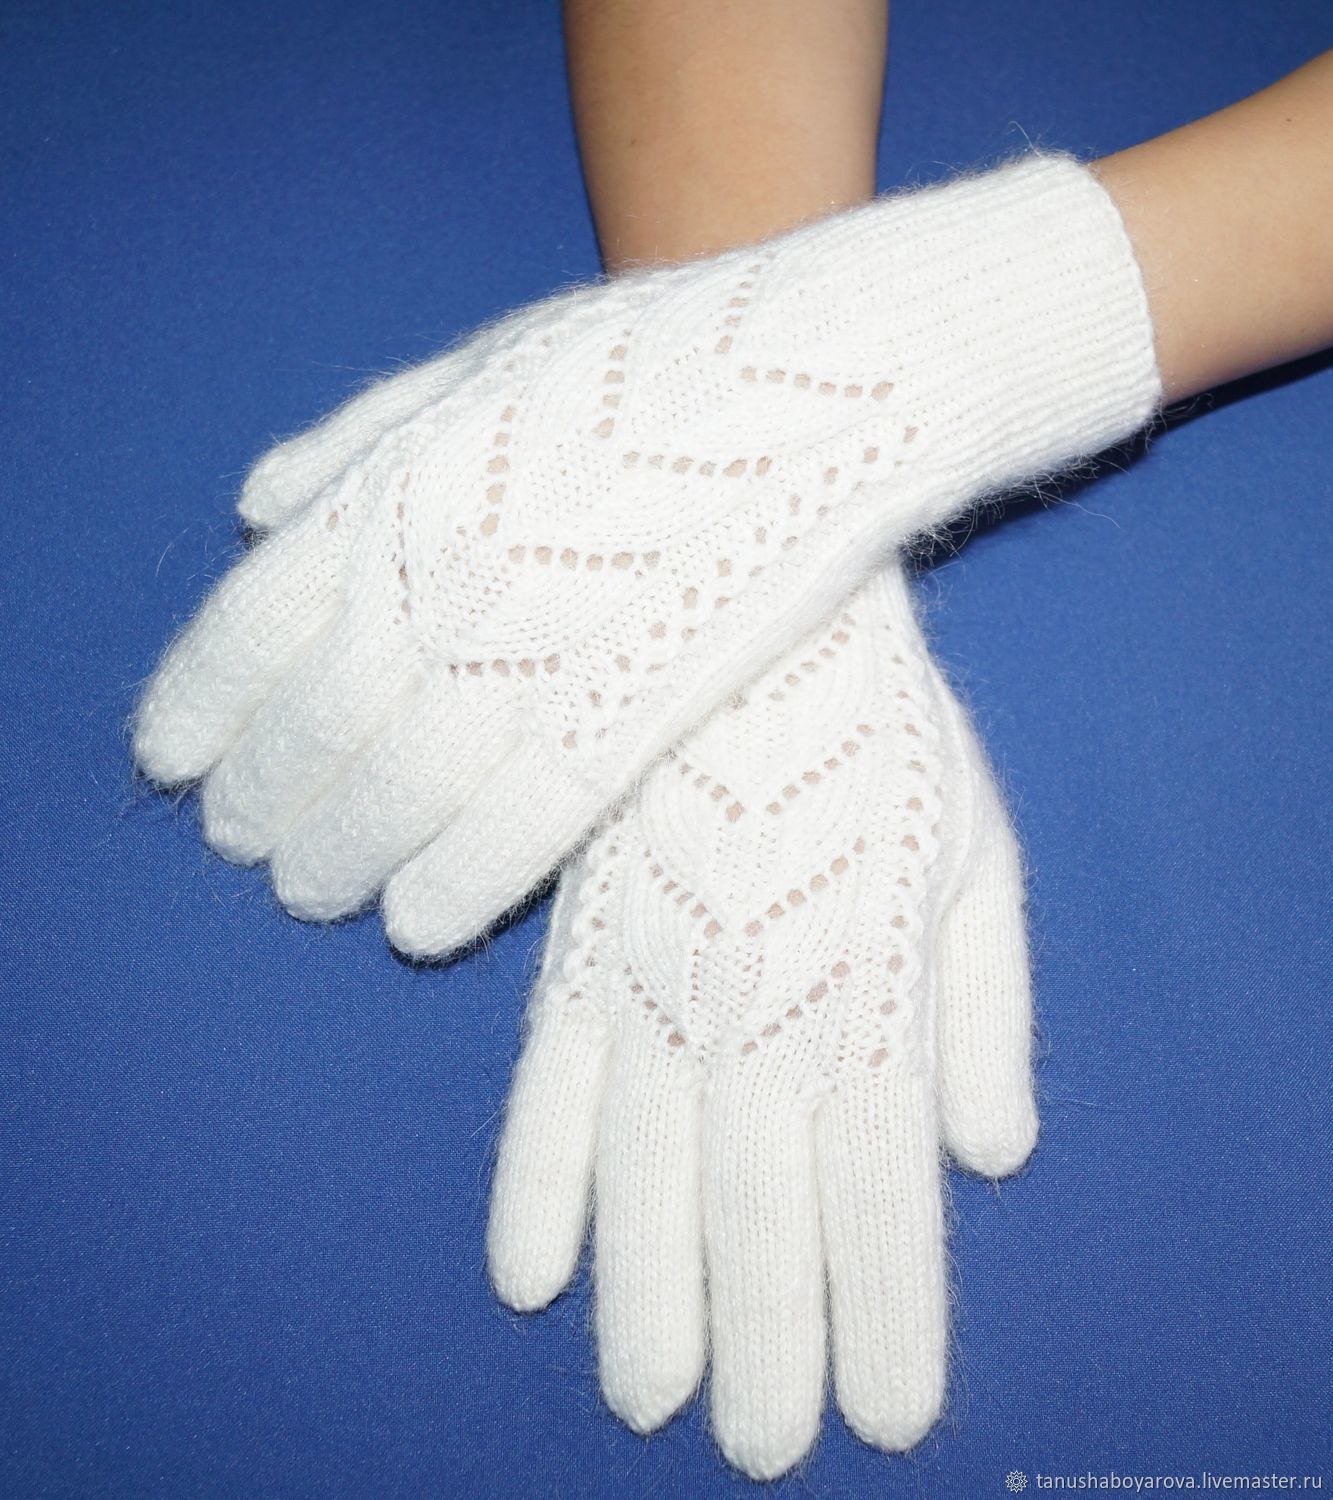 Knitting Pattern For Gloves White Fluffy Gloves Knitted Gloves With Lace Pattern Dpactcom Orenburg